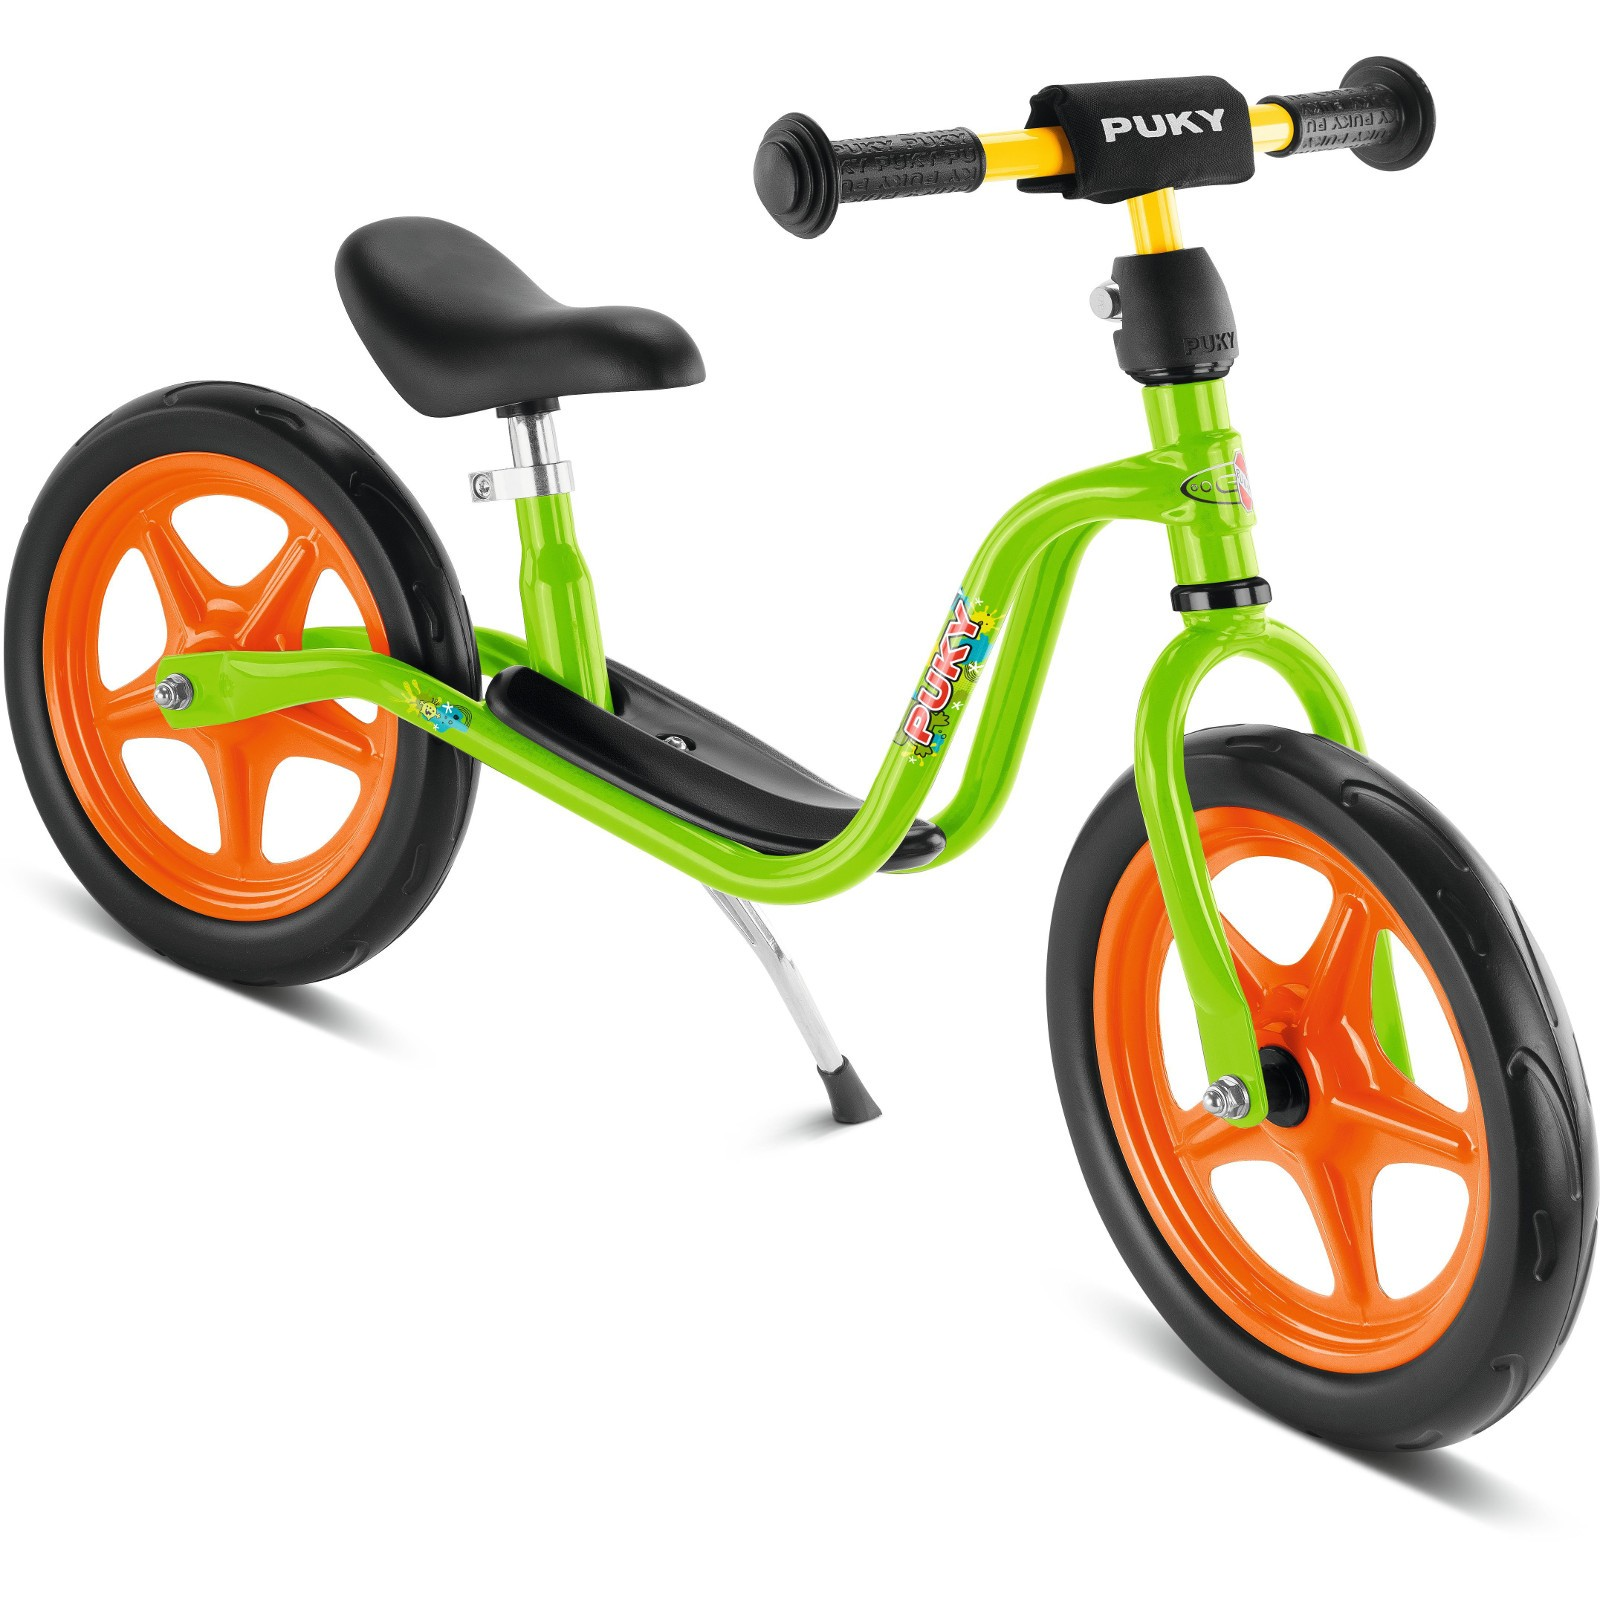 a3c0ebeec98 Product picture. Loading zoom. puky. PUKY balance bike ...